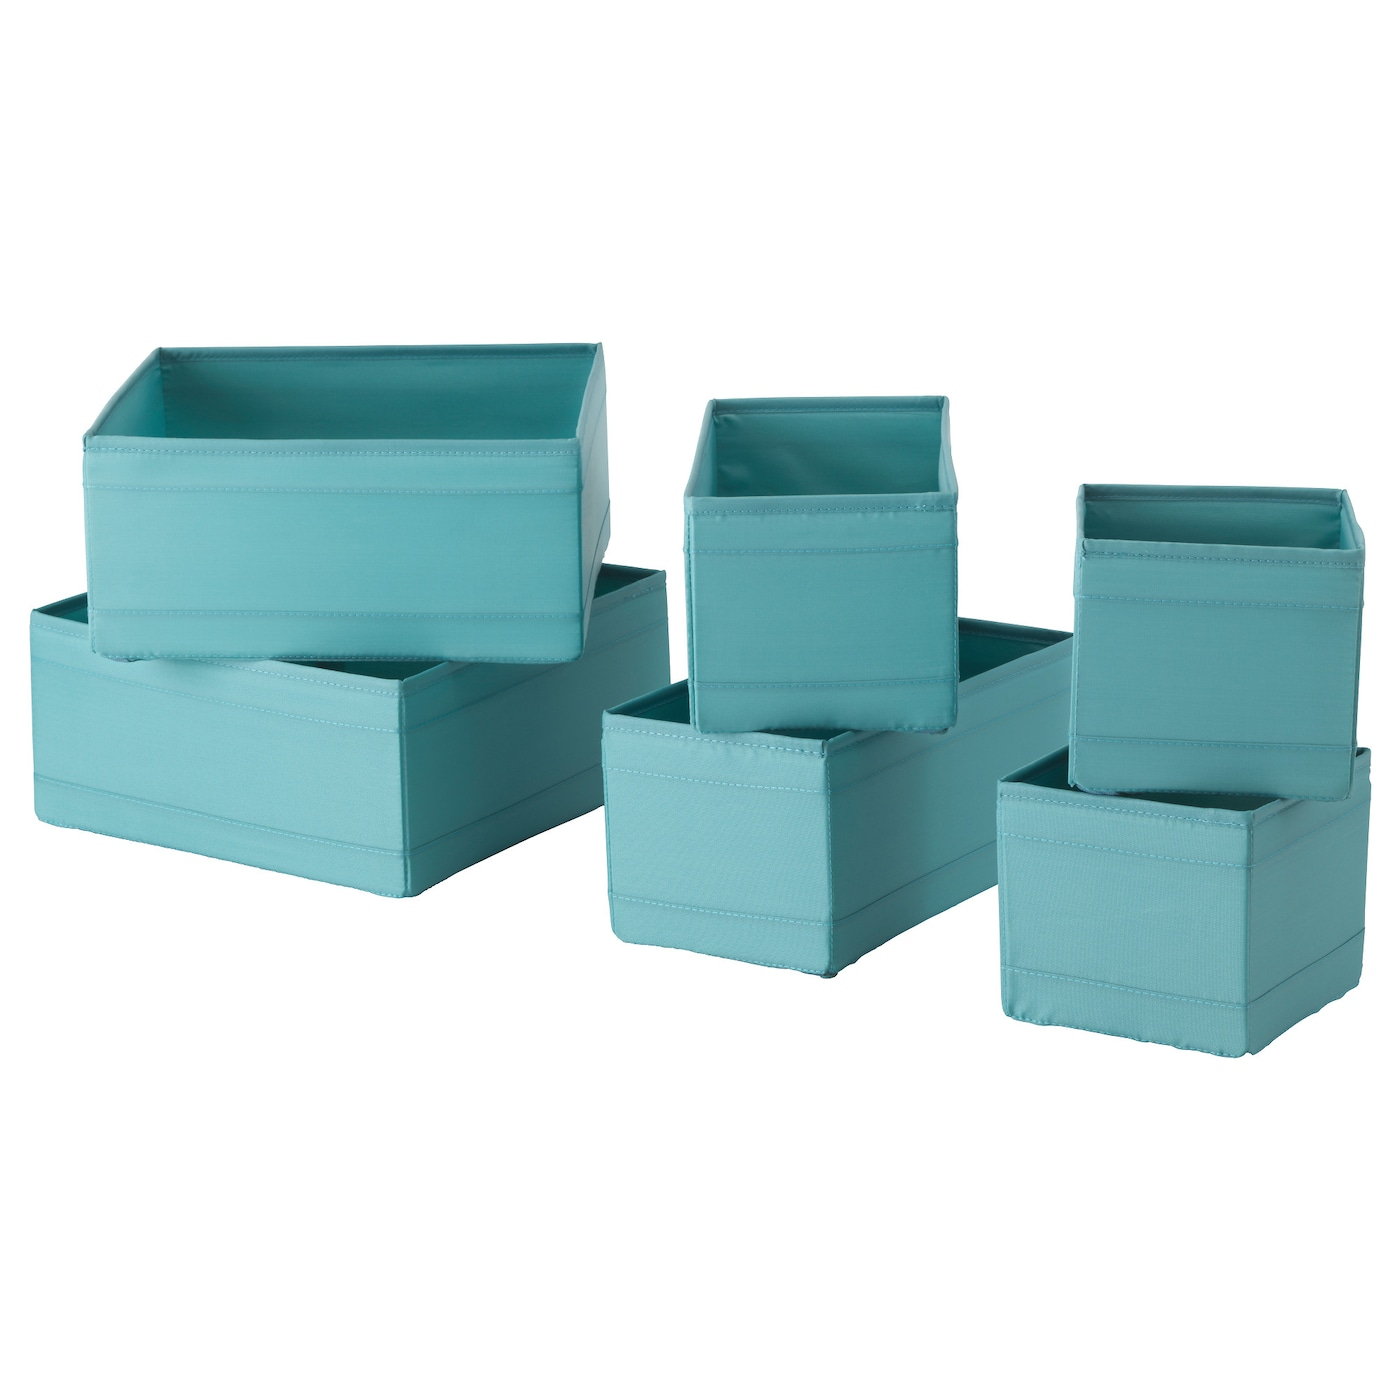 SKUBB Box set of 6 Light blue IKEA